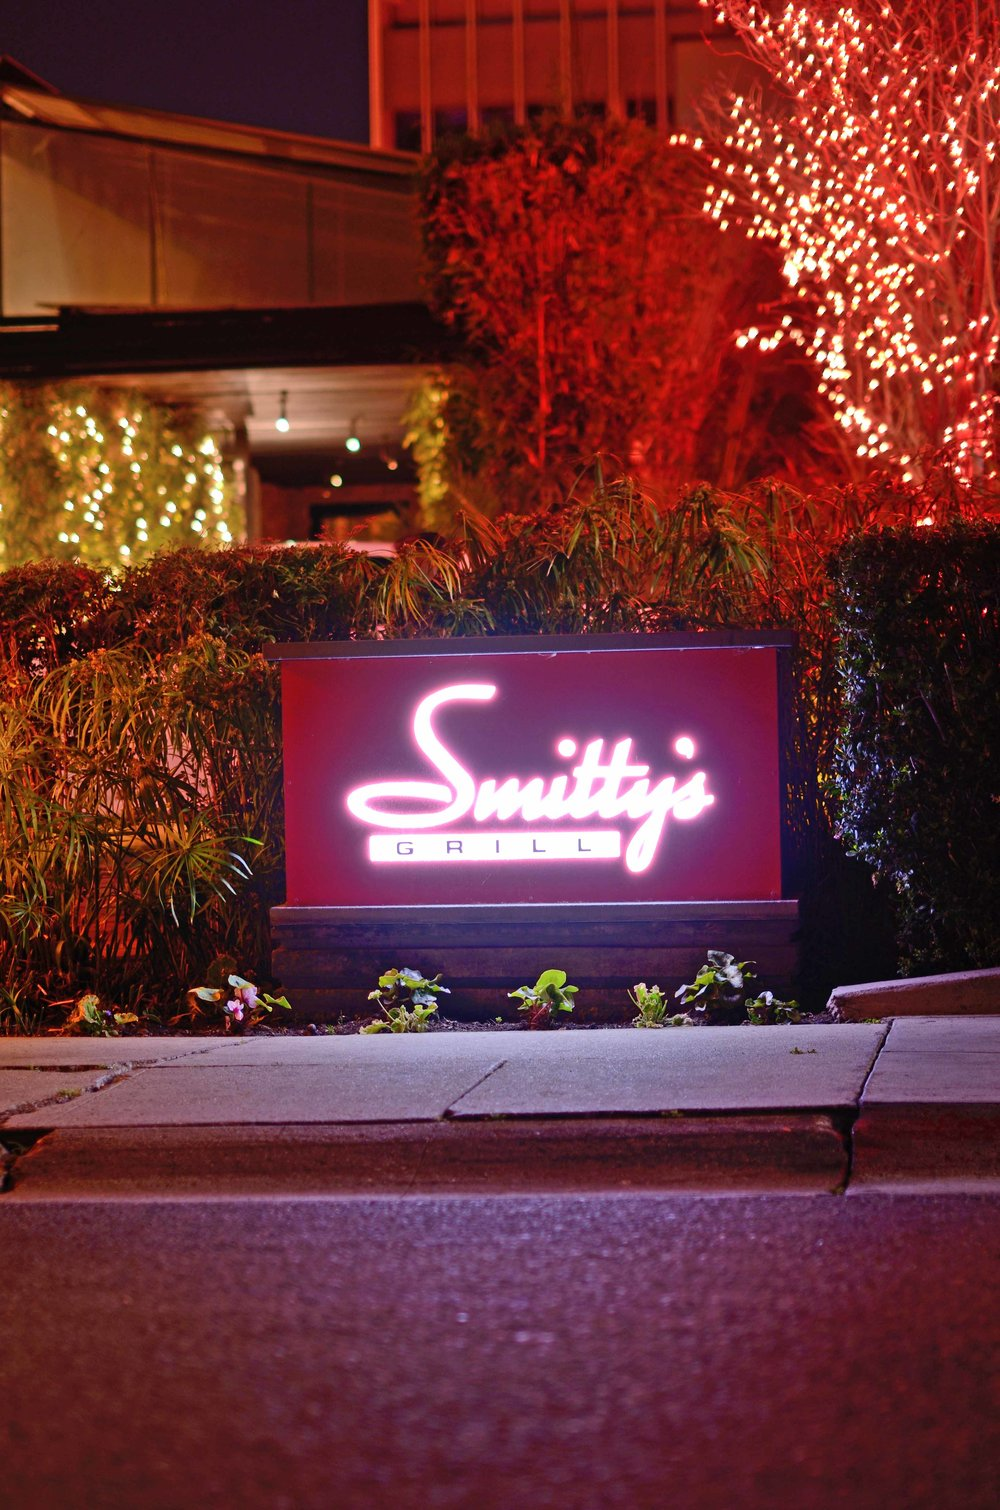 Smitty's Grill Sign by Valet on Shoppers Lane